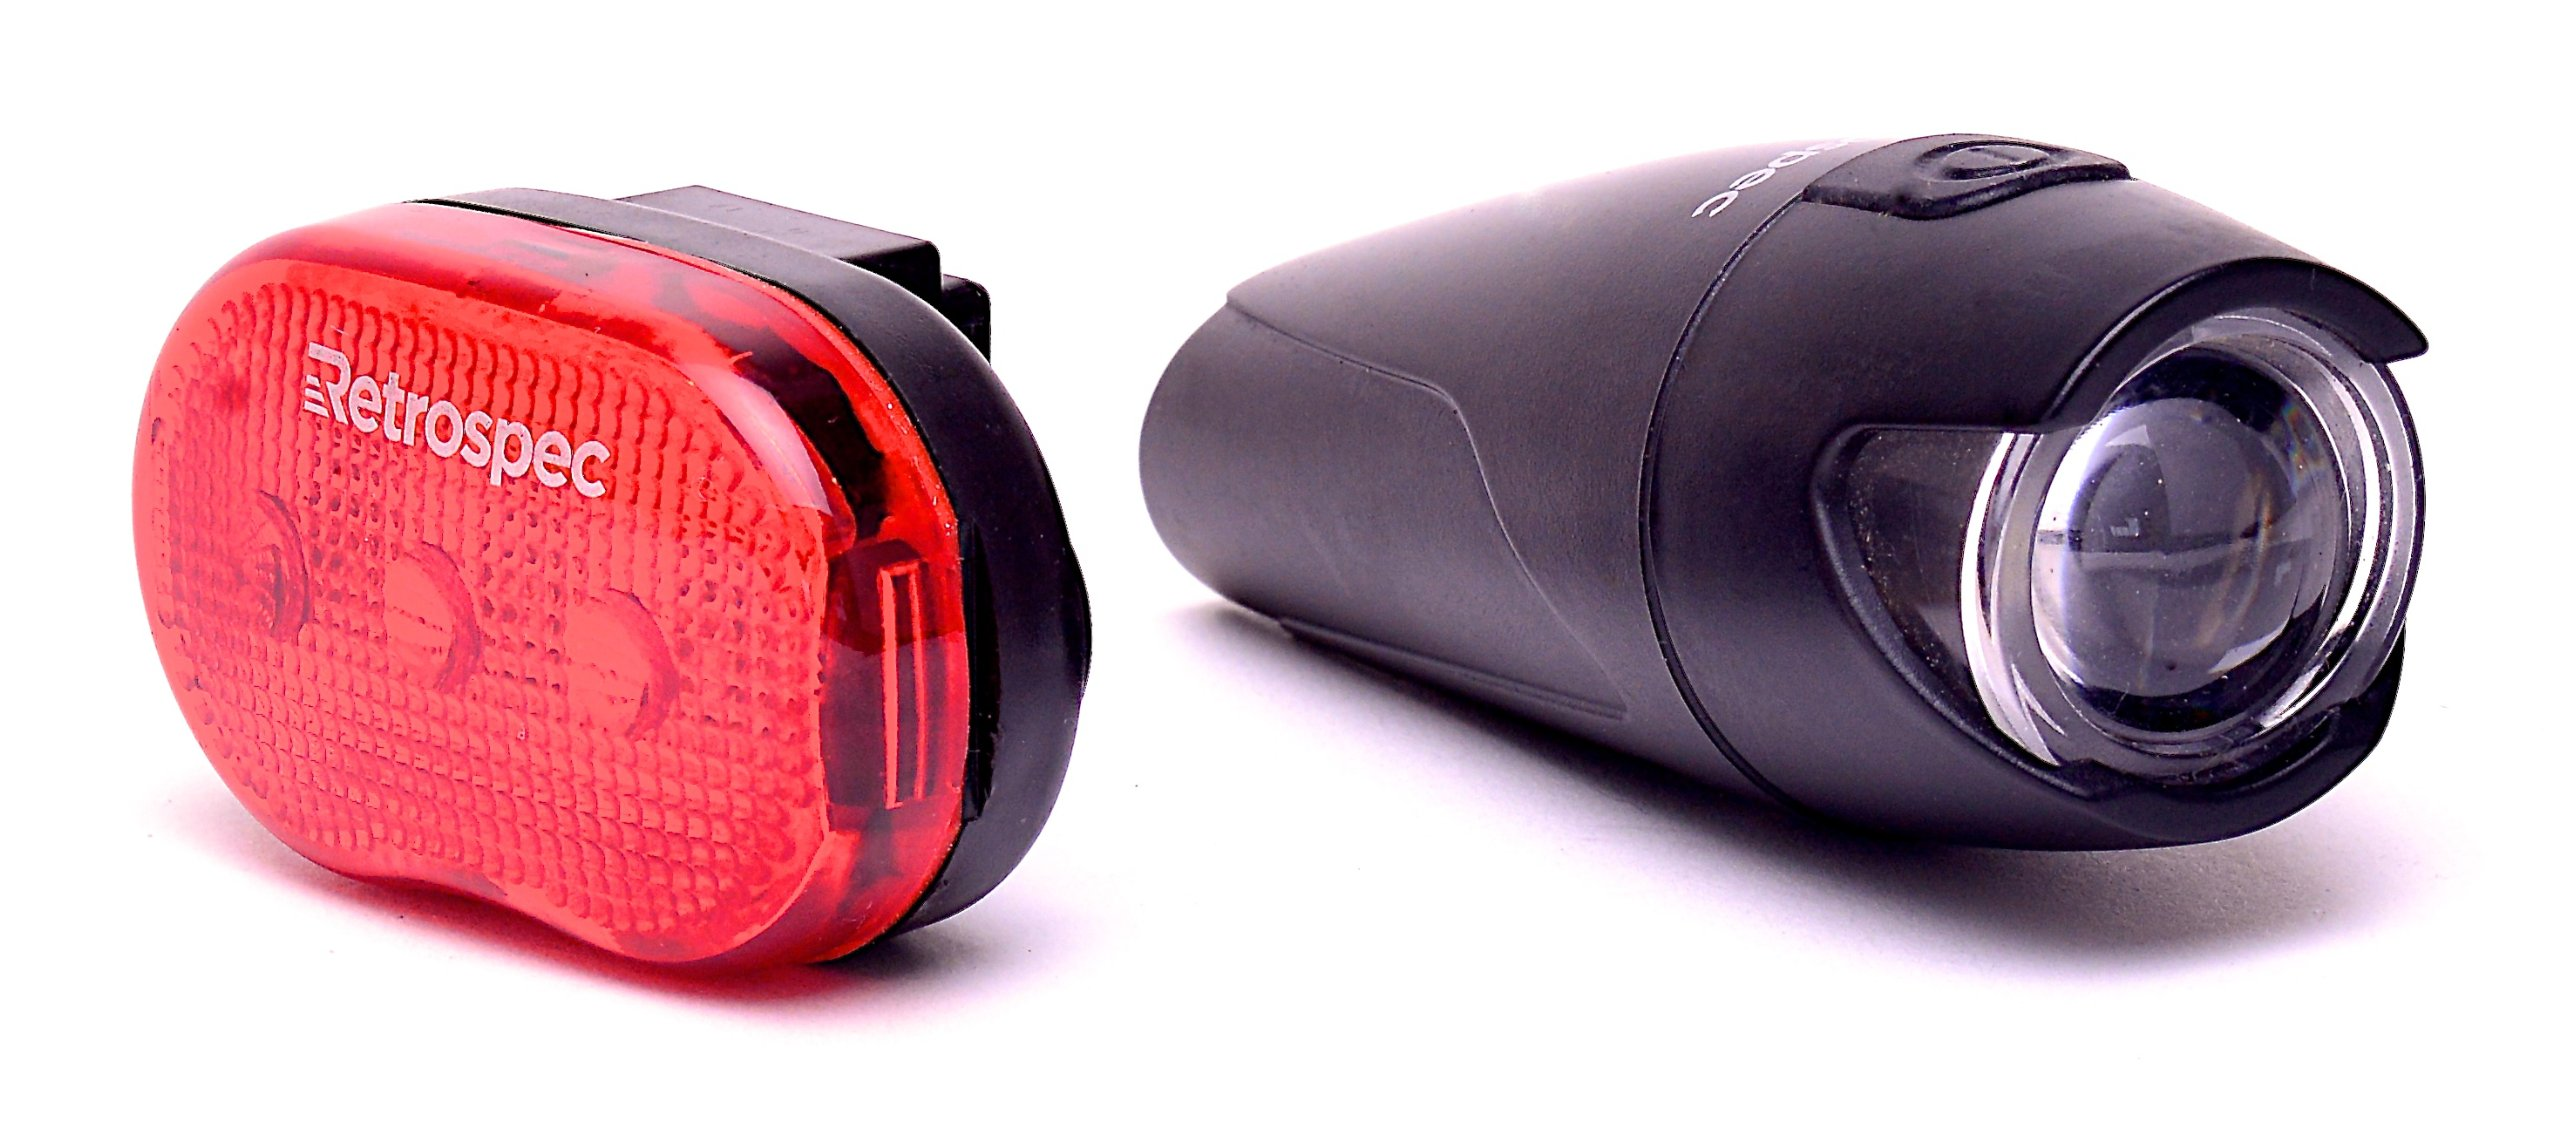 Retrospec Bicycles Authentic Nichia Extreme LED Headlight and Venice-3 LED Taillight with Articulating Mount Headlight and Taillight Combo by Retrospec Bicycles